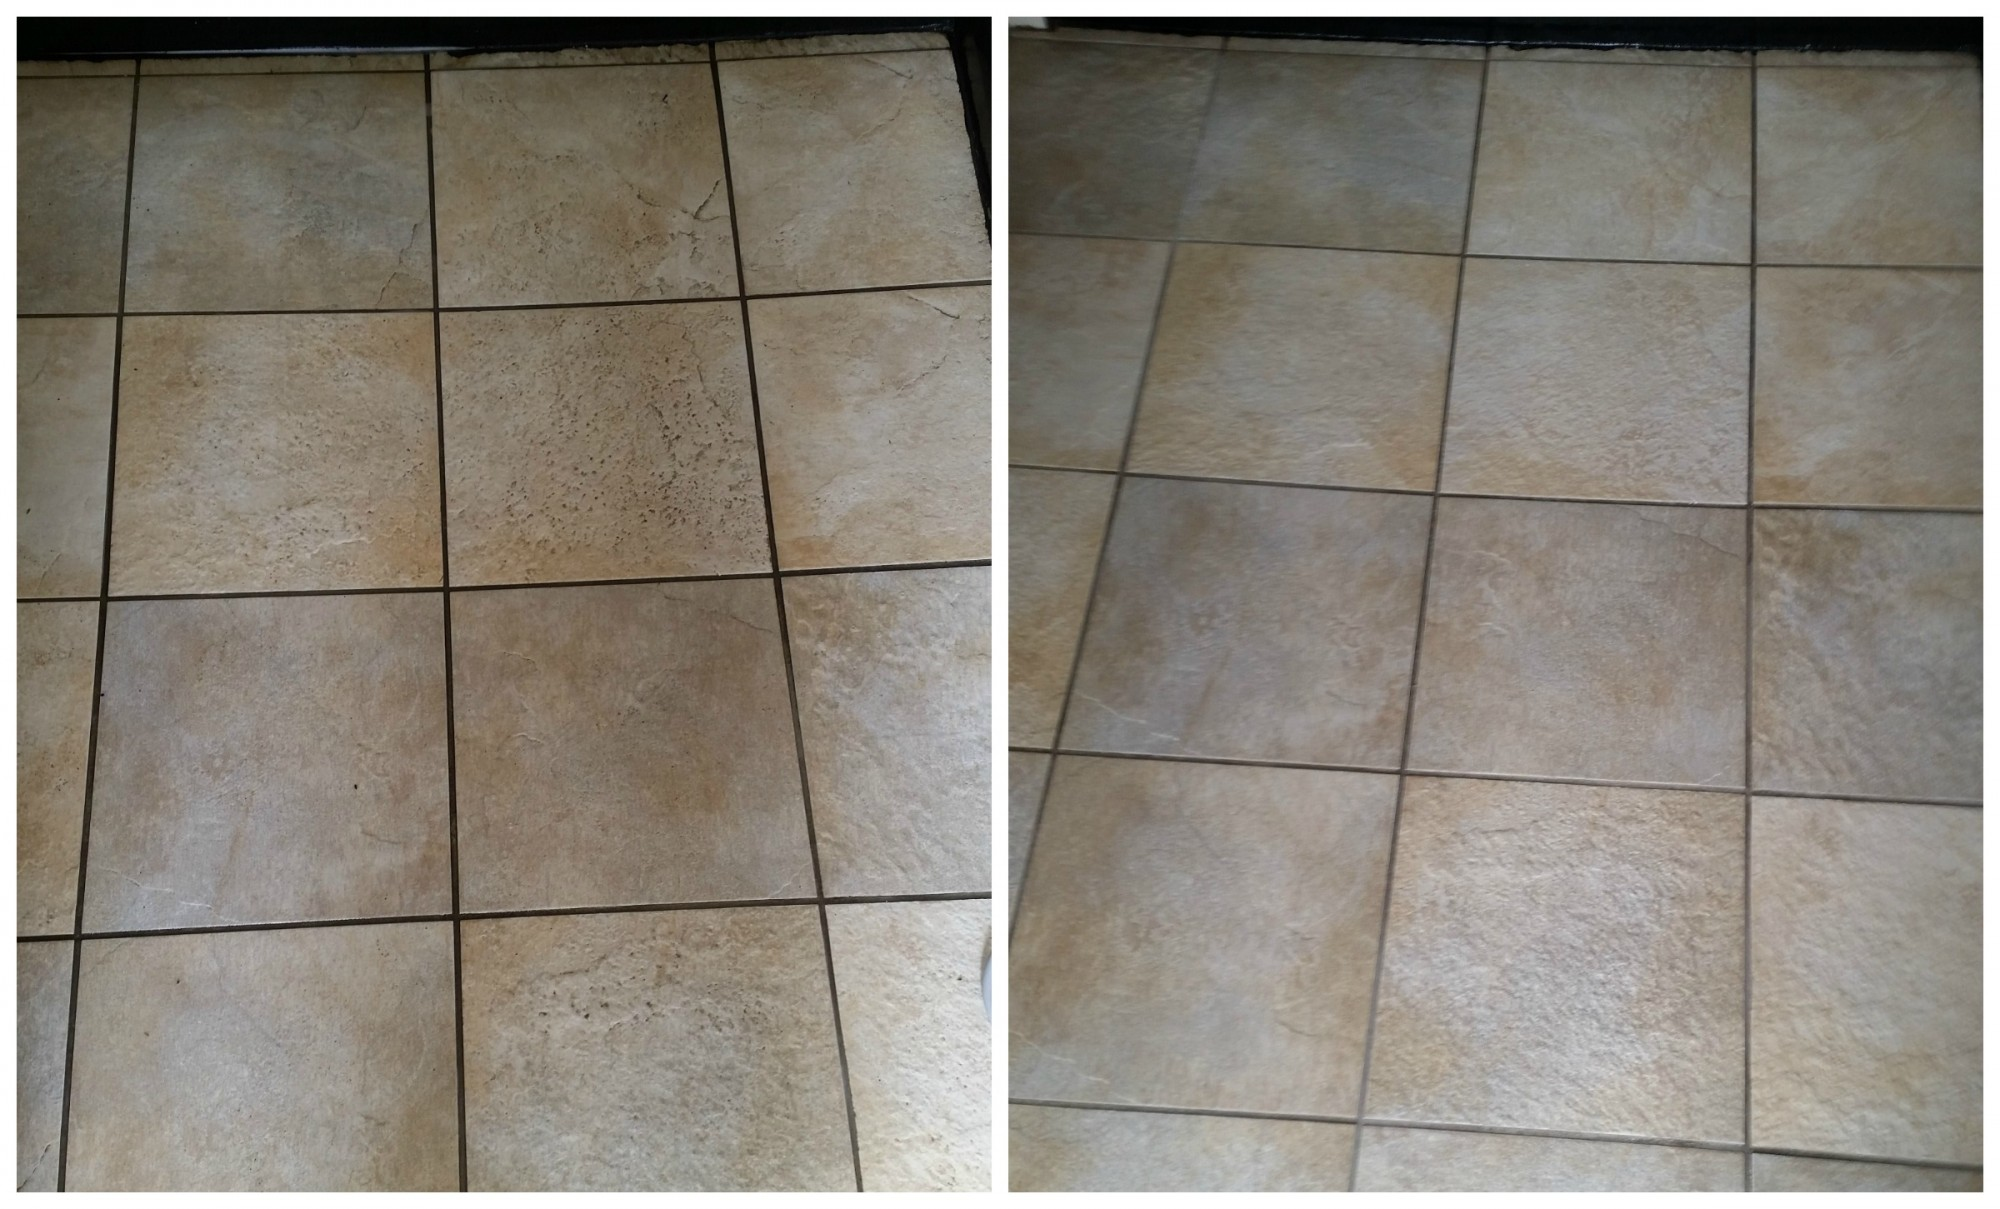 Tile Floor Cleaning In Bedfordshire Five Star Furnishing Care - How to protect ceramic tile floors